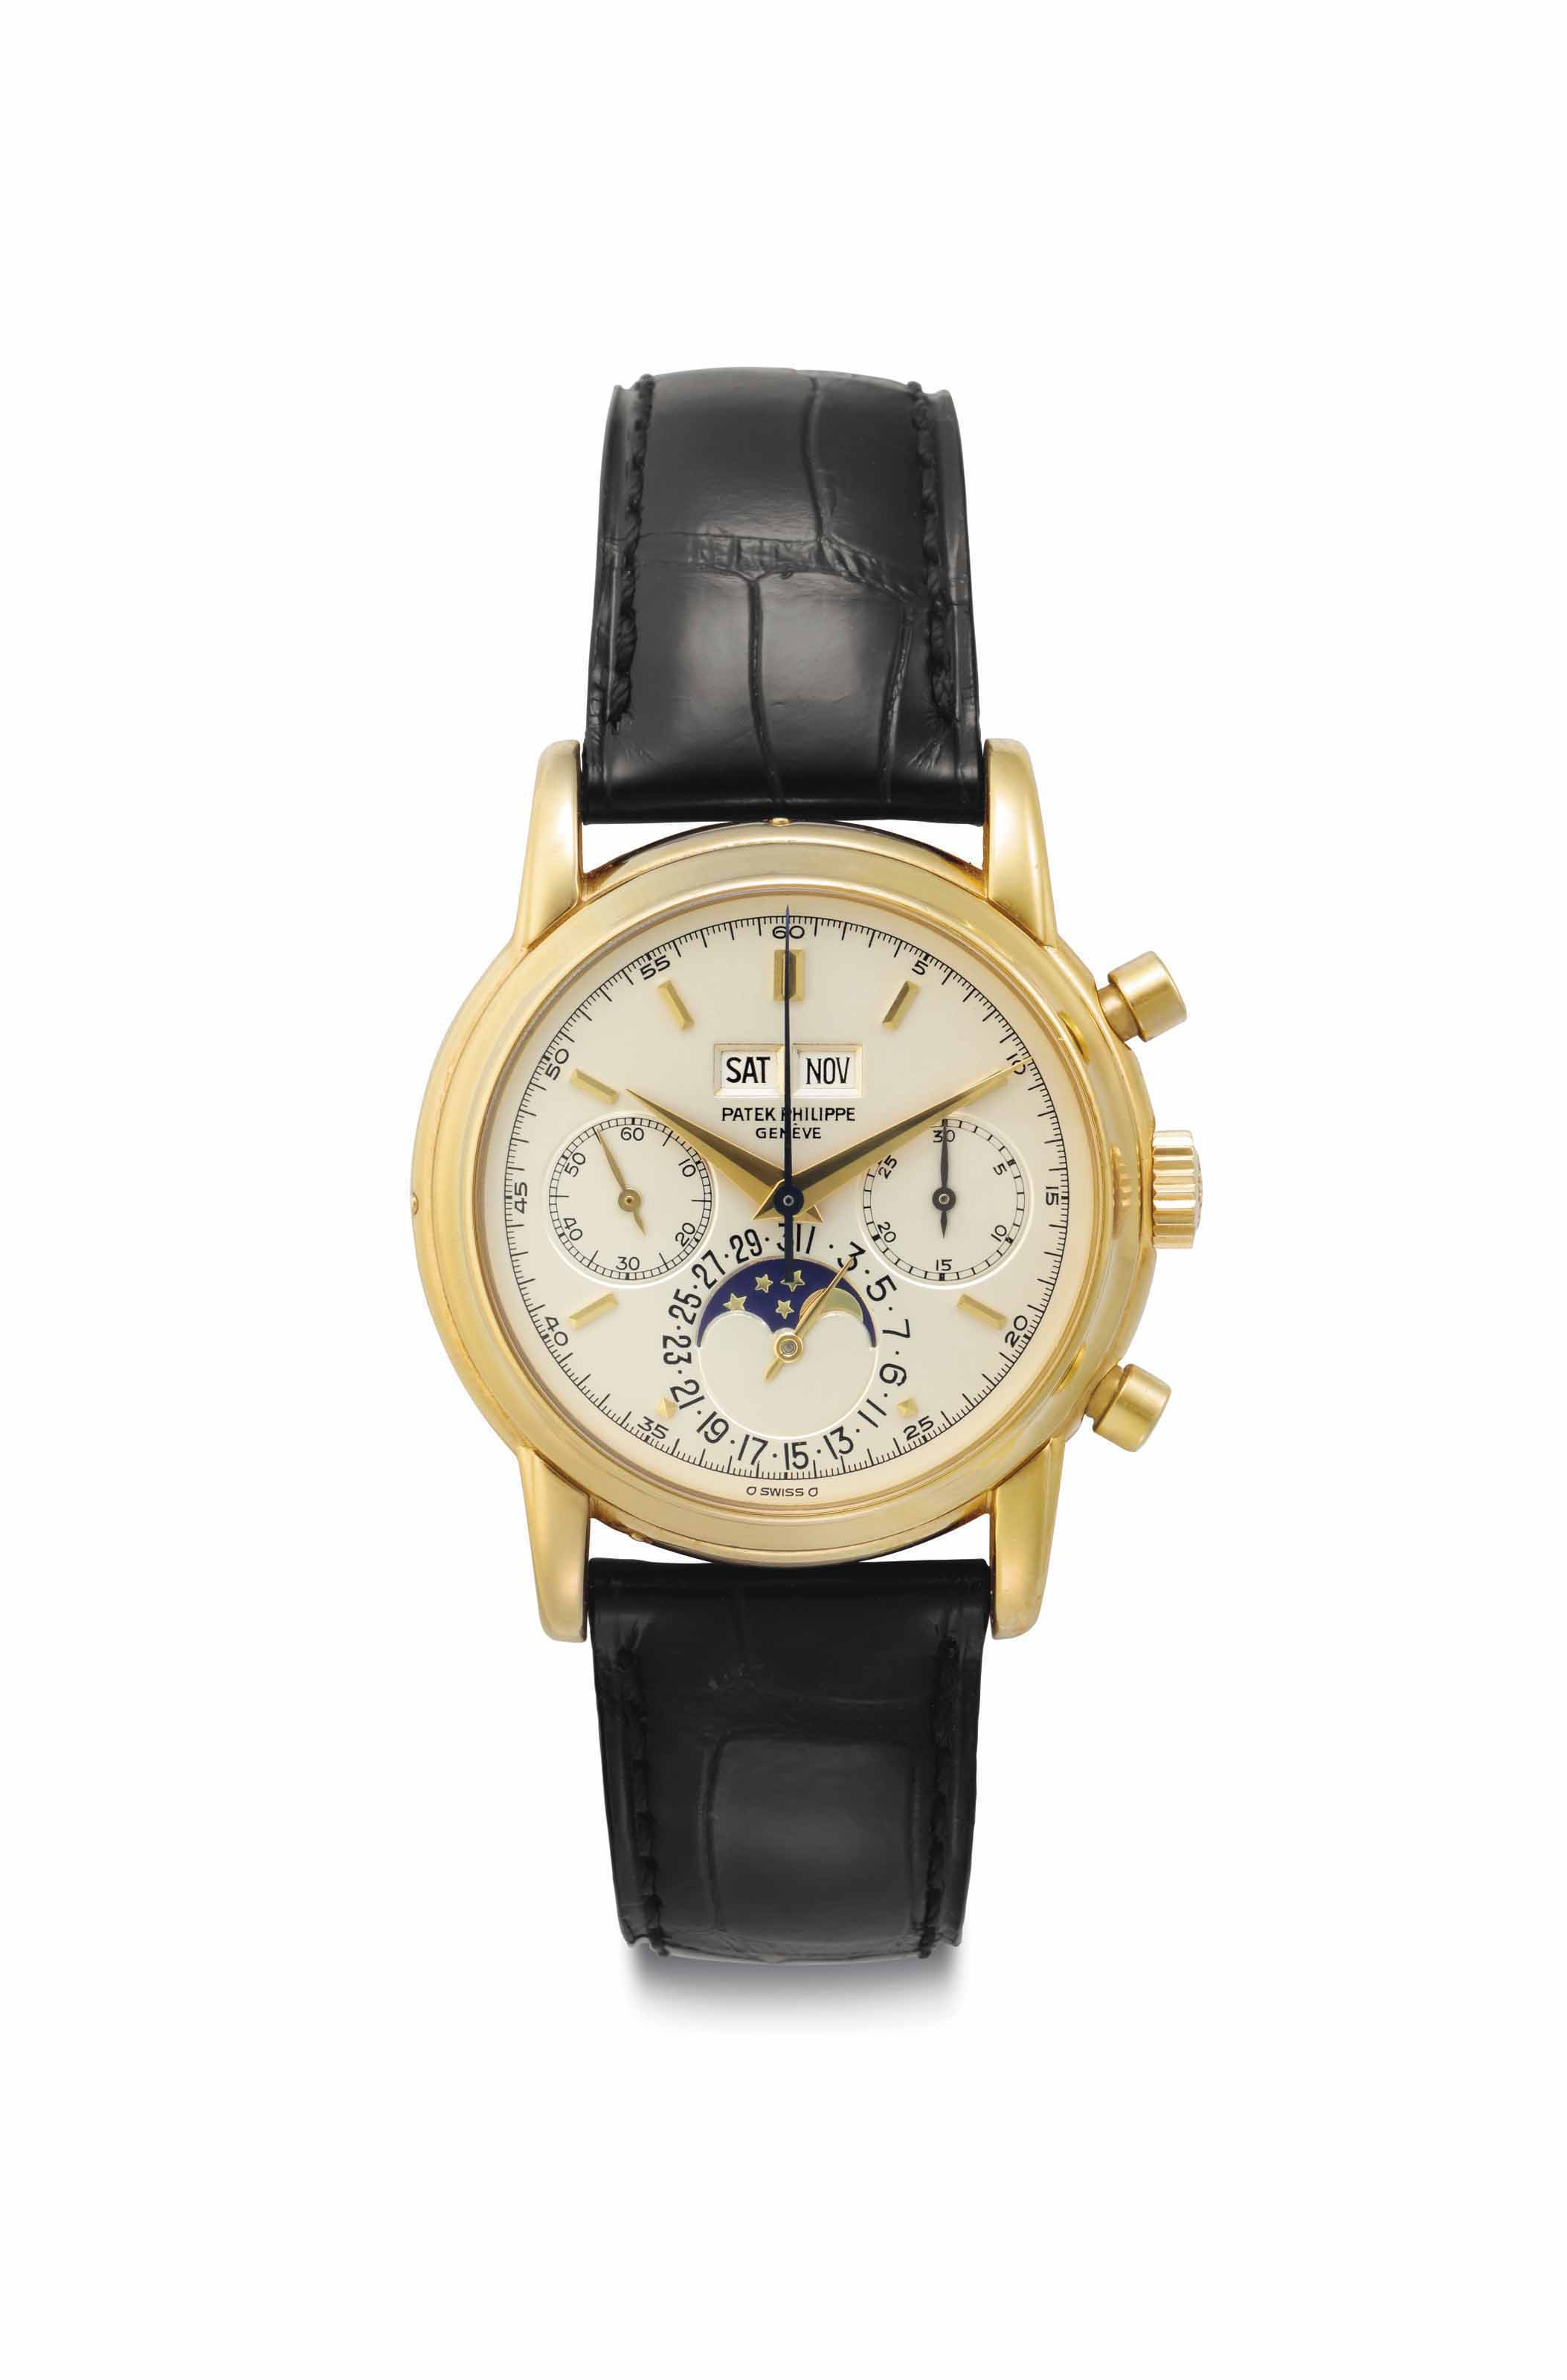 Patek Philippe. A Very Fine and Rare 18k Gold Perpetual Calendar Chronograph Wristwatch with Moon Phases